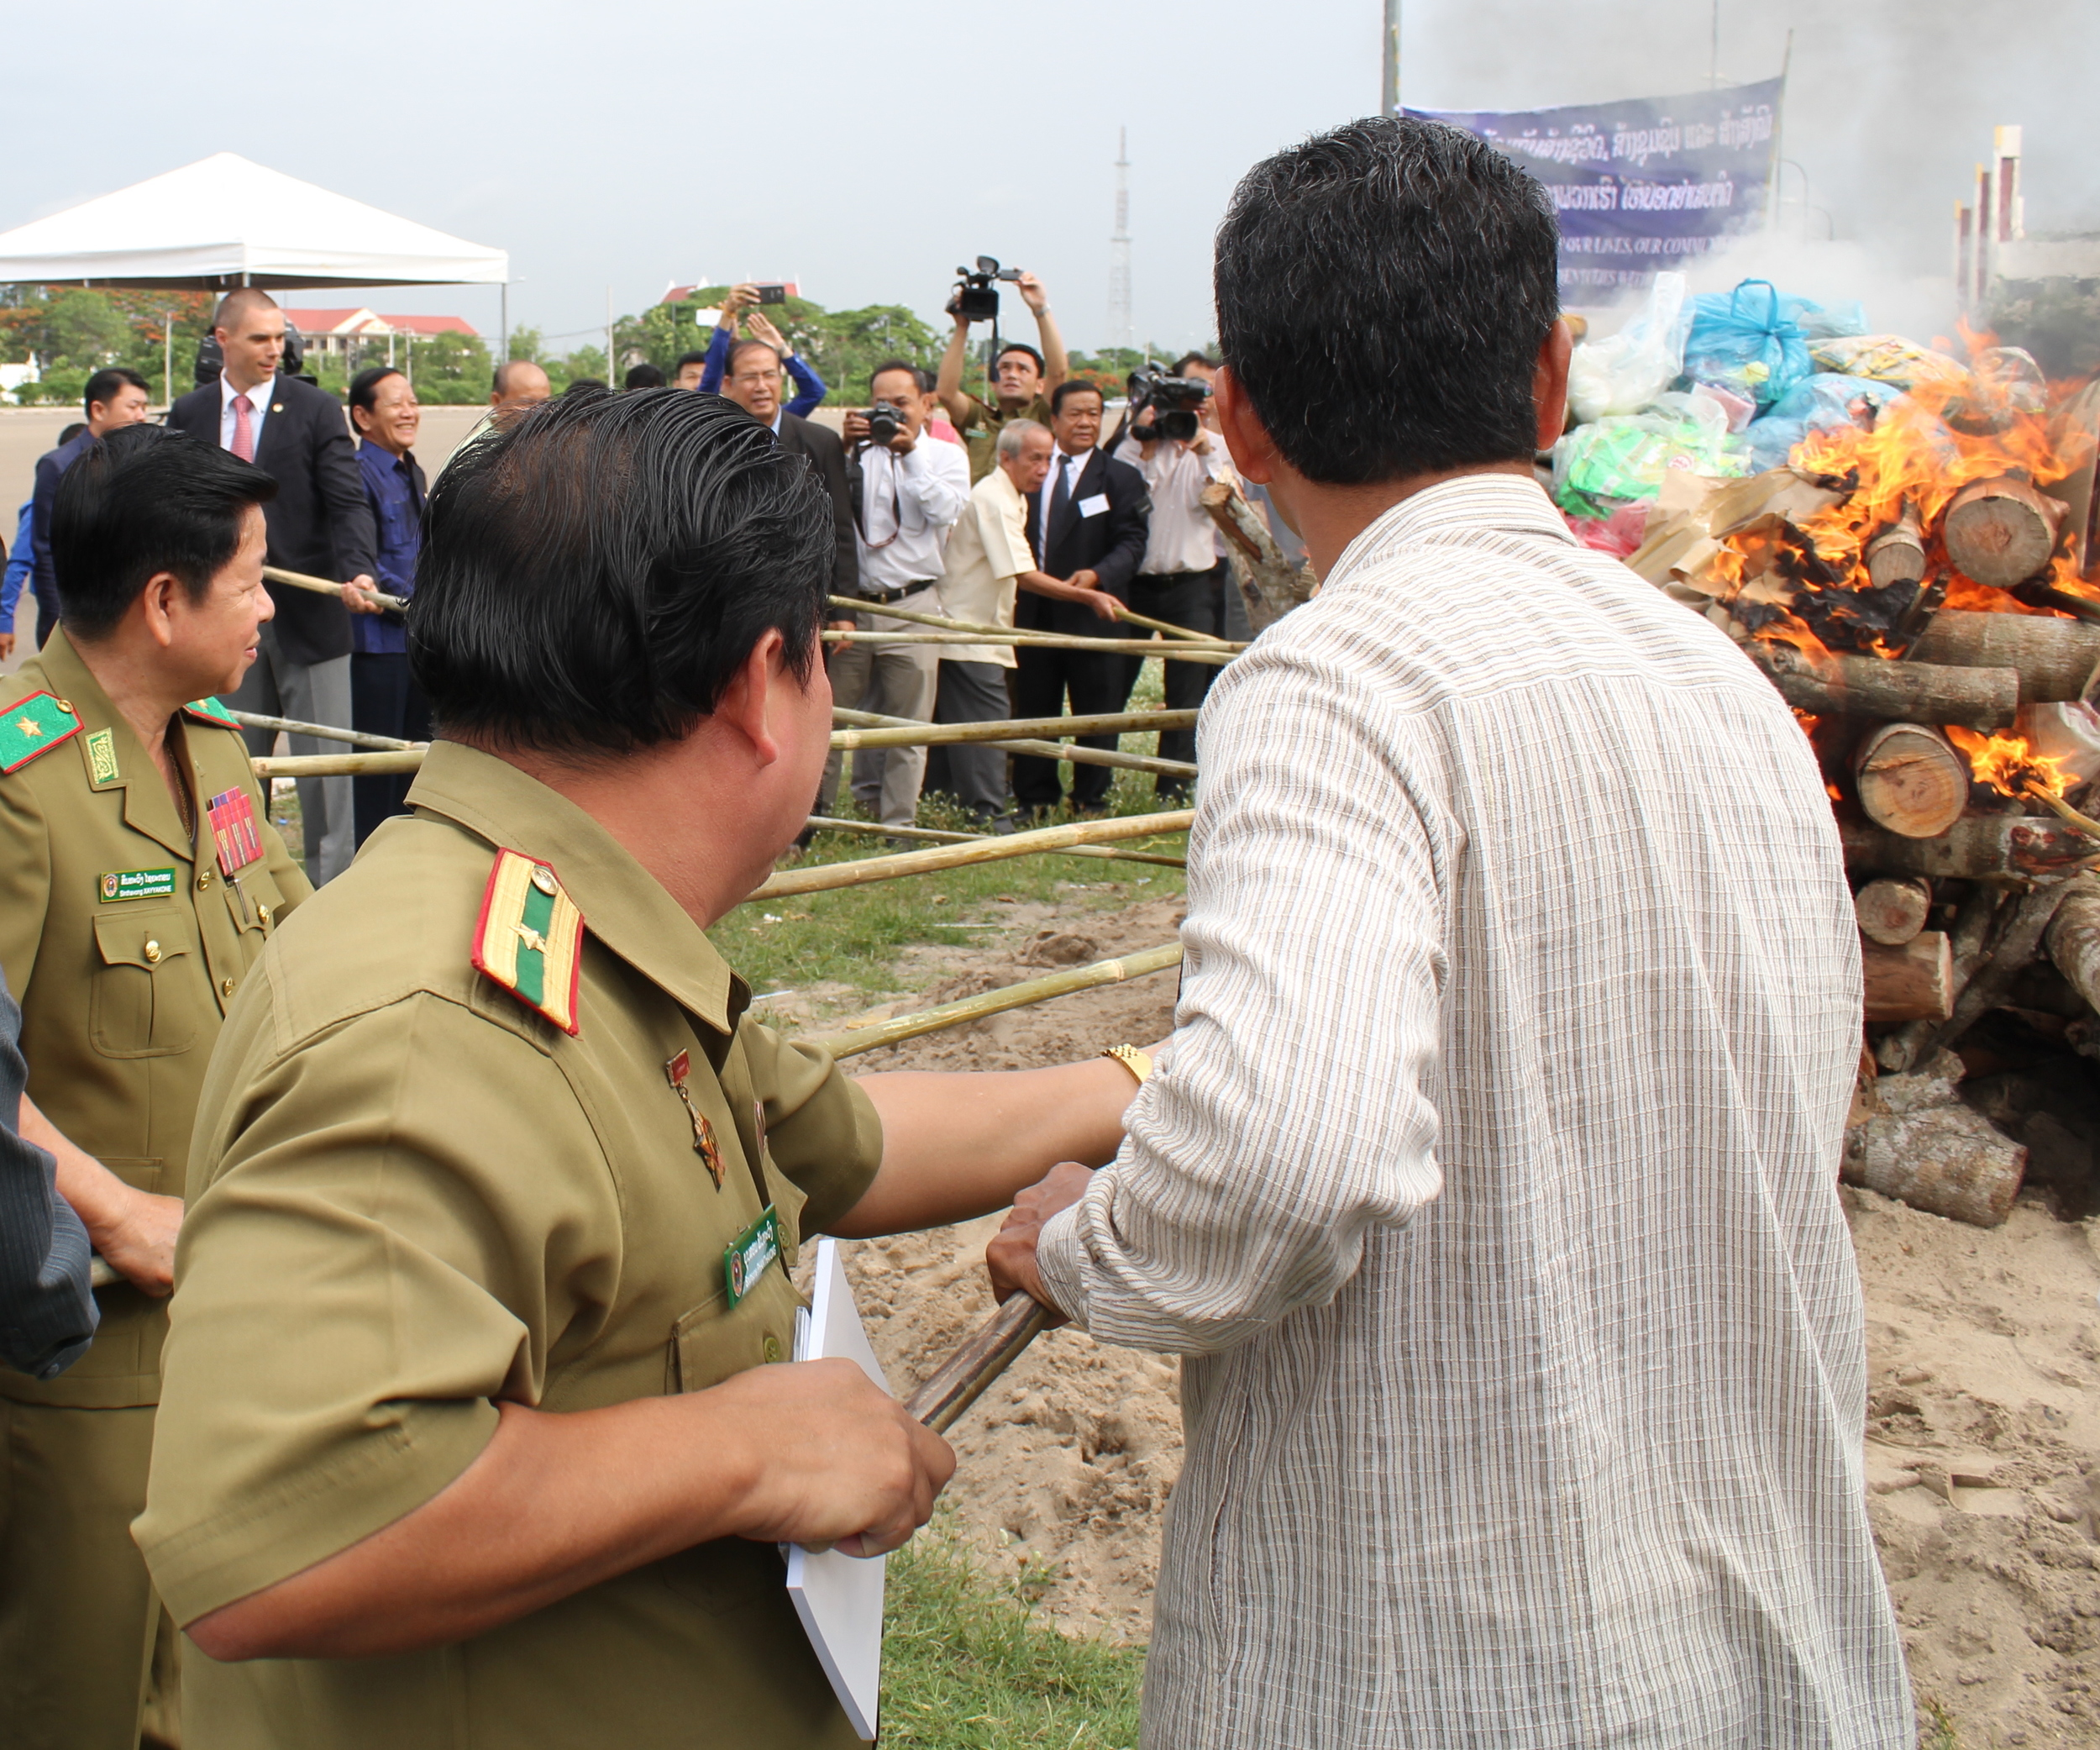 GJG co-director, Marcus Baltzer, takes part in the ceremony to mark the international day against drug abuse and illicit trafficking in Vientiane. Photo: UNODC